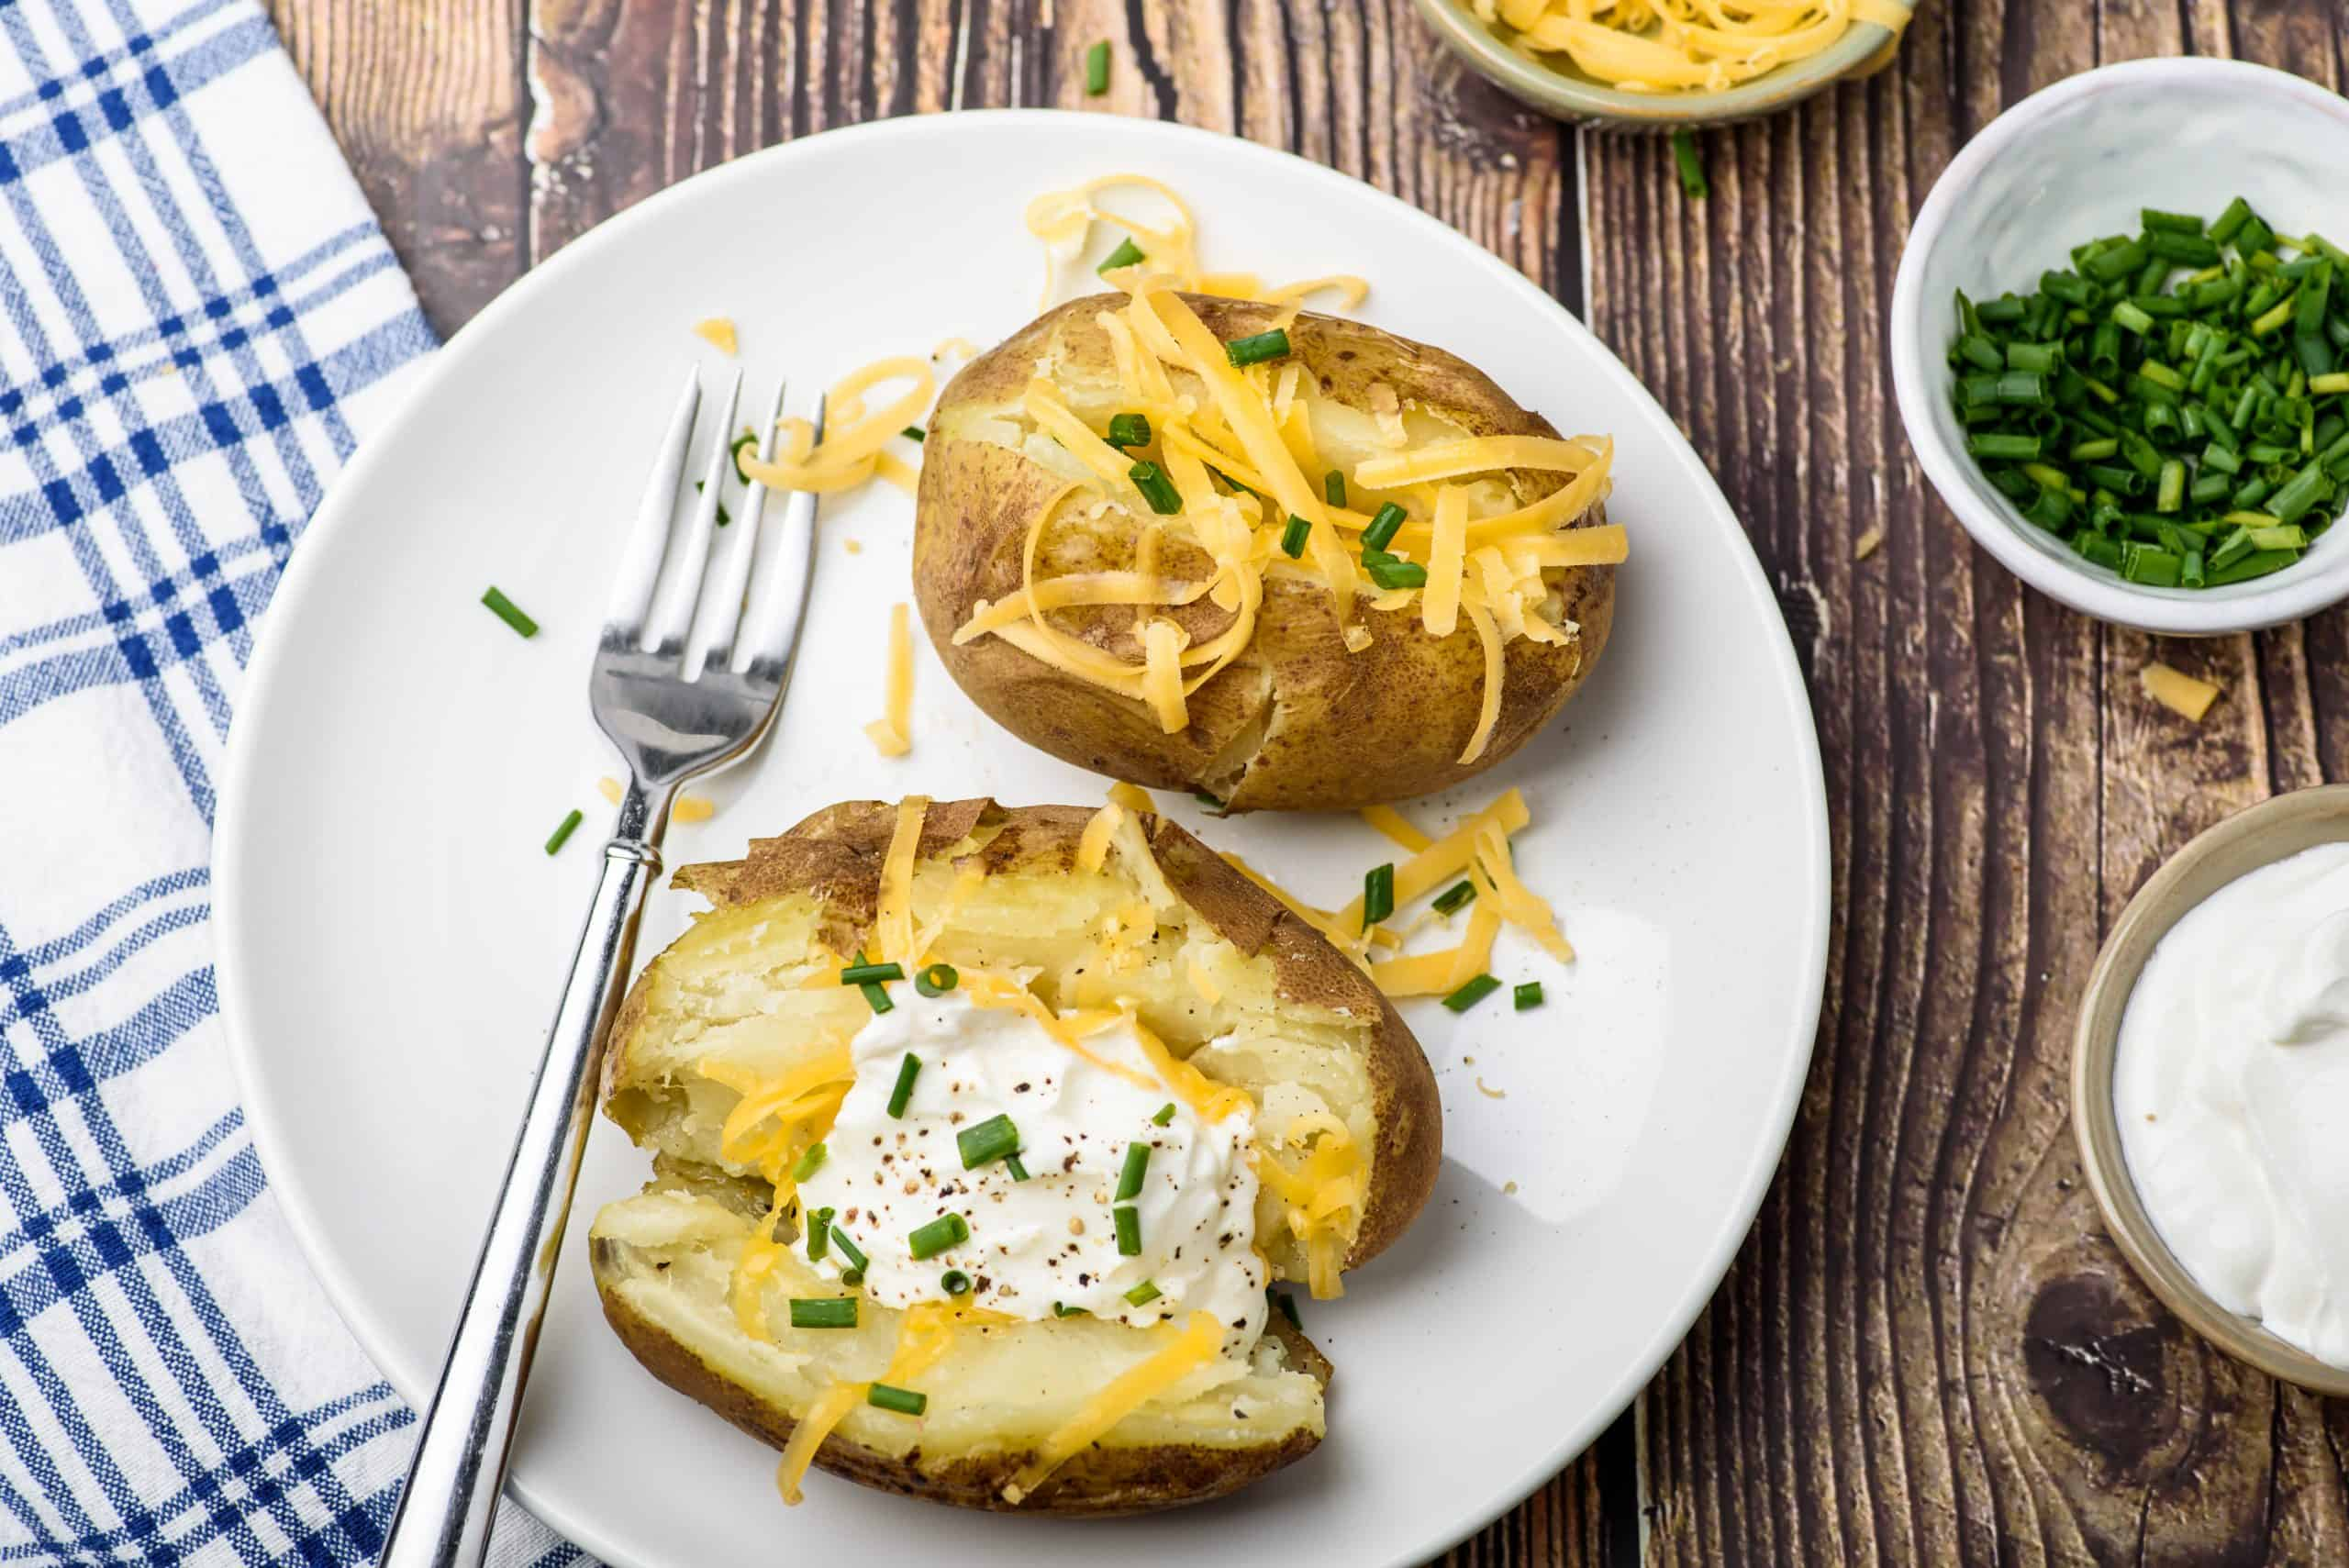 Dinner plate with baked potatoes topped with cheese and sour cream.